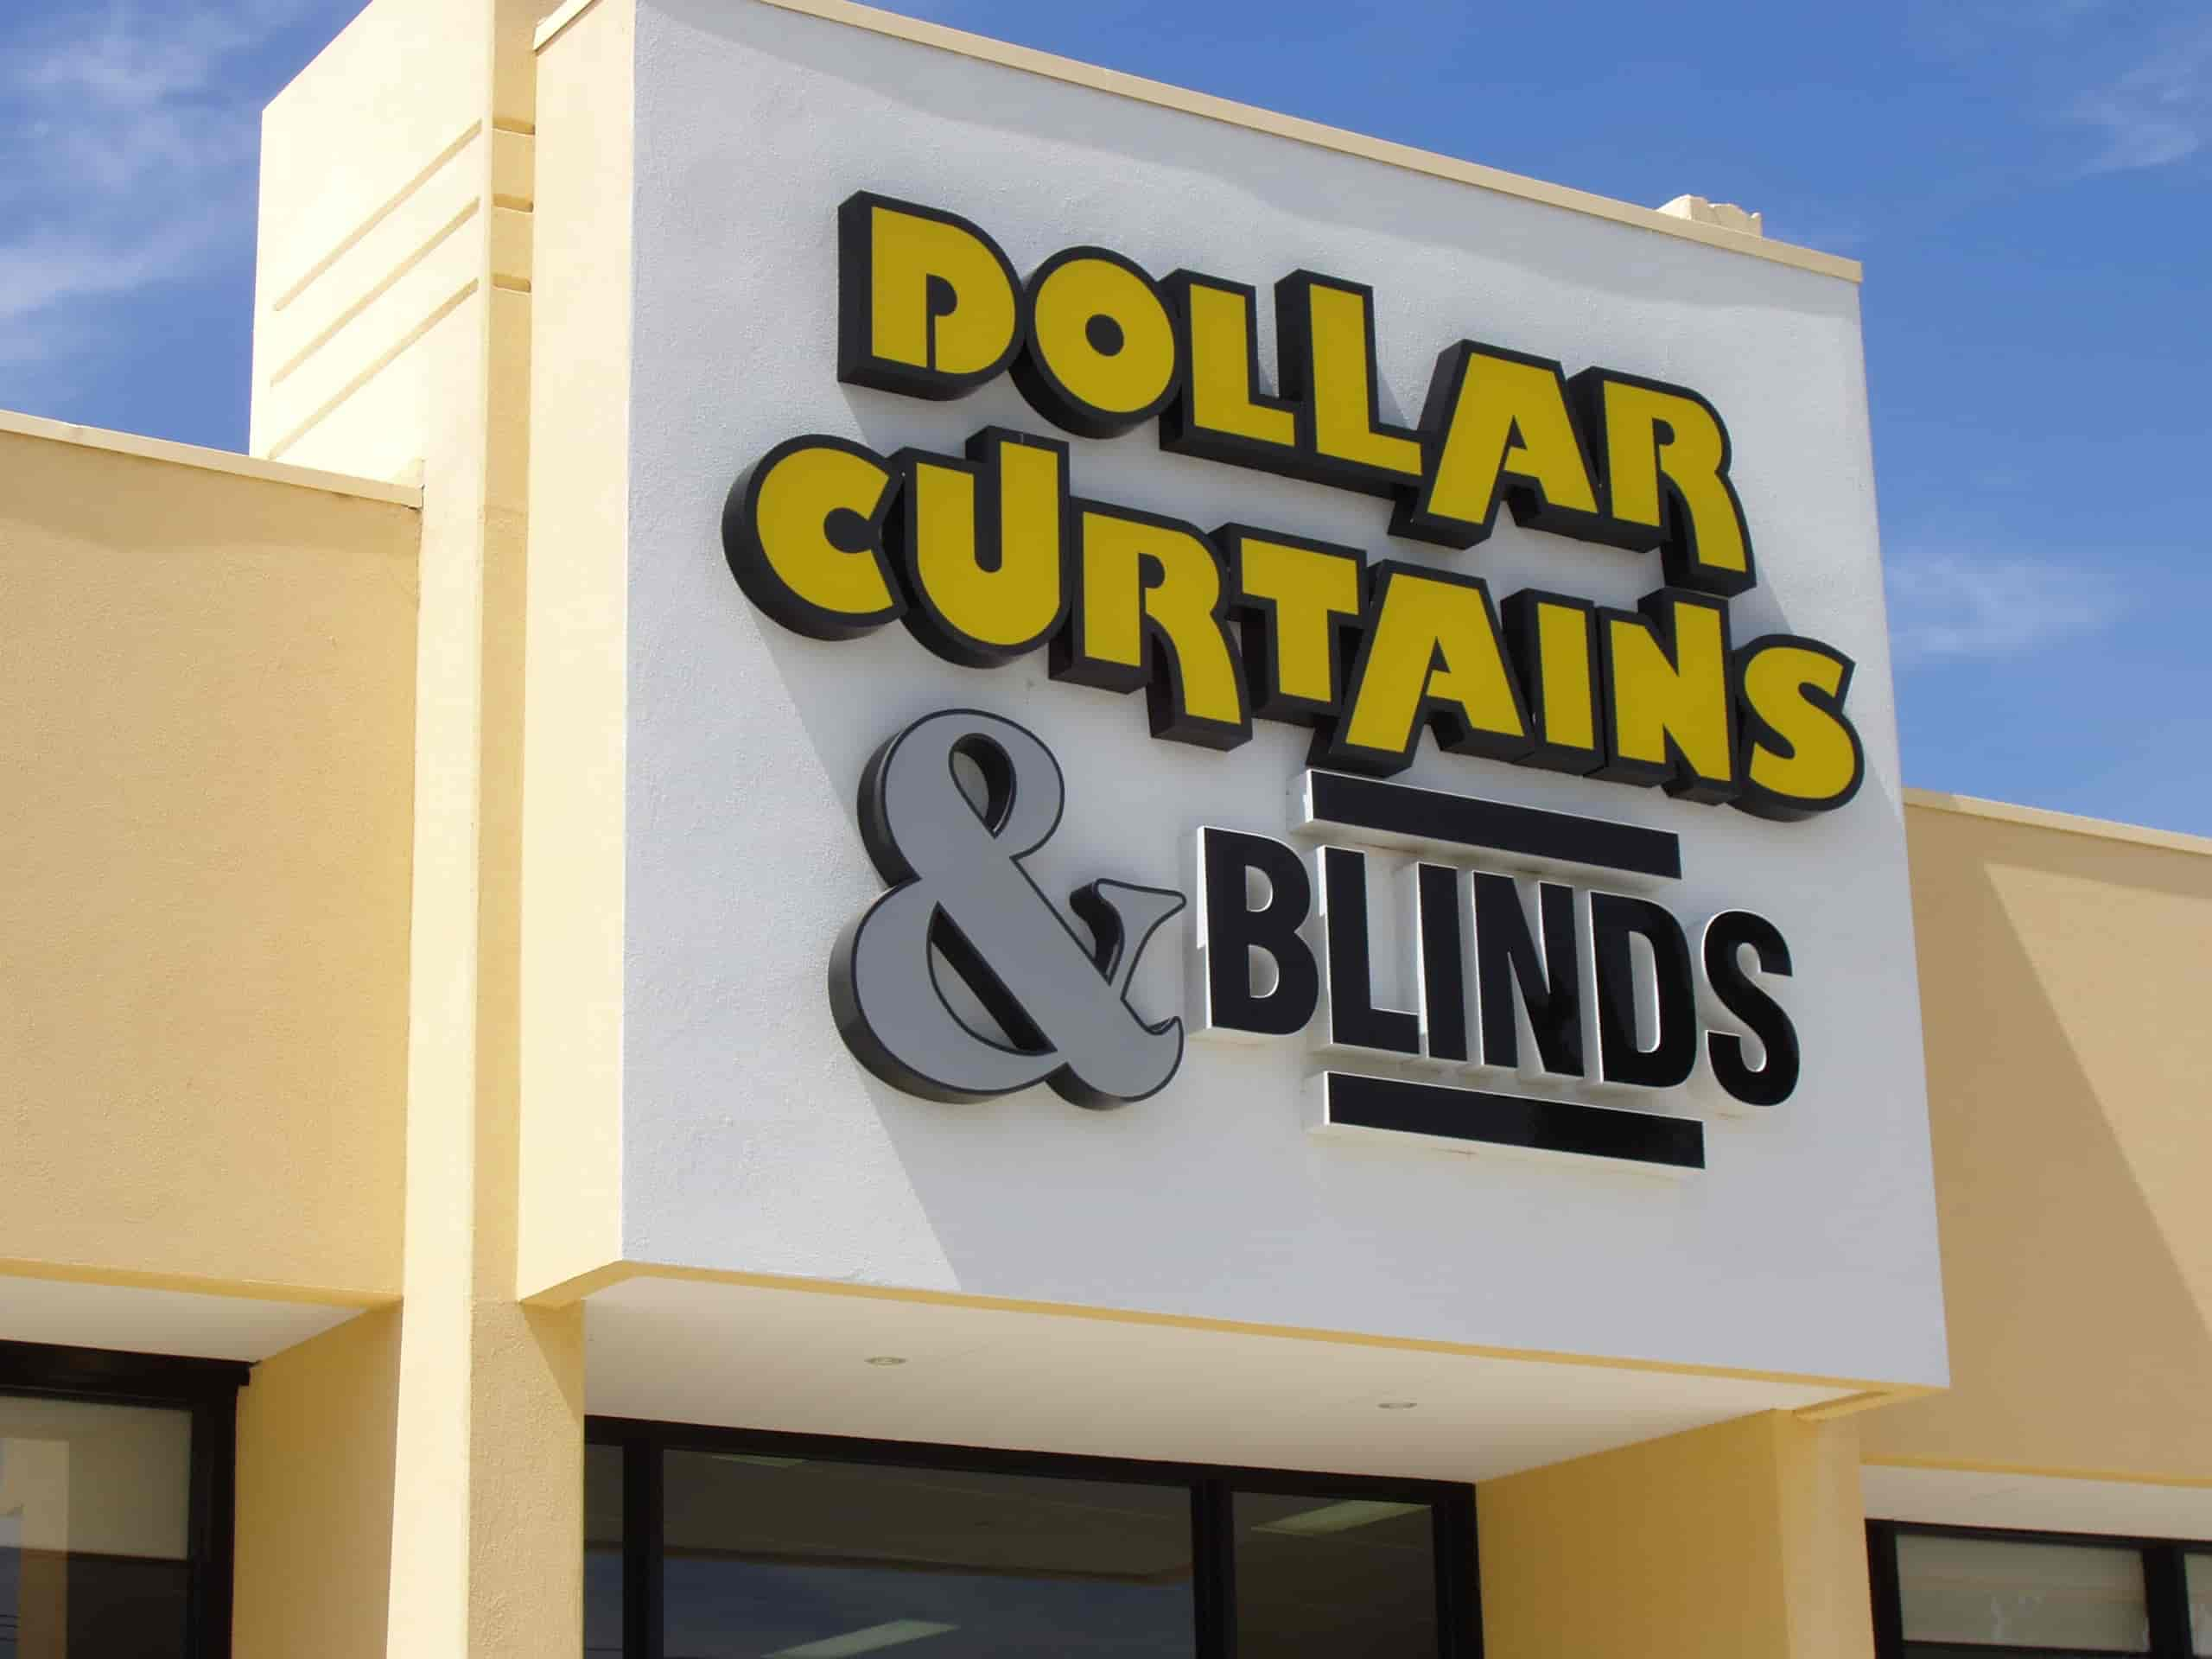 Dollar curtains & blinds fabricated lettering building signage